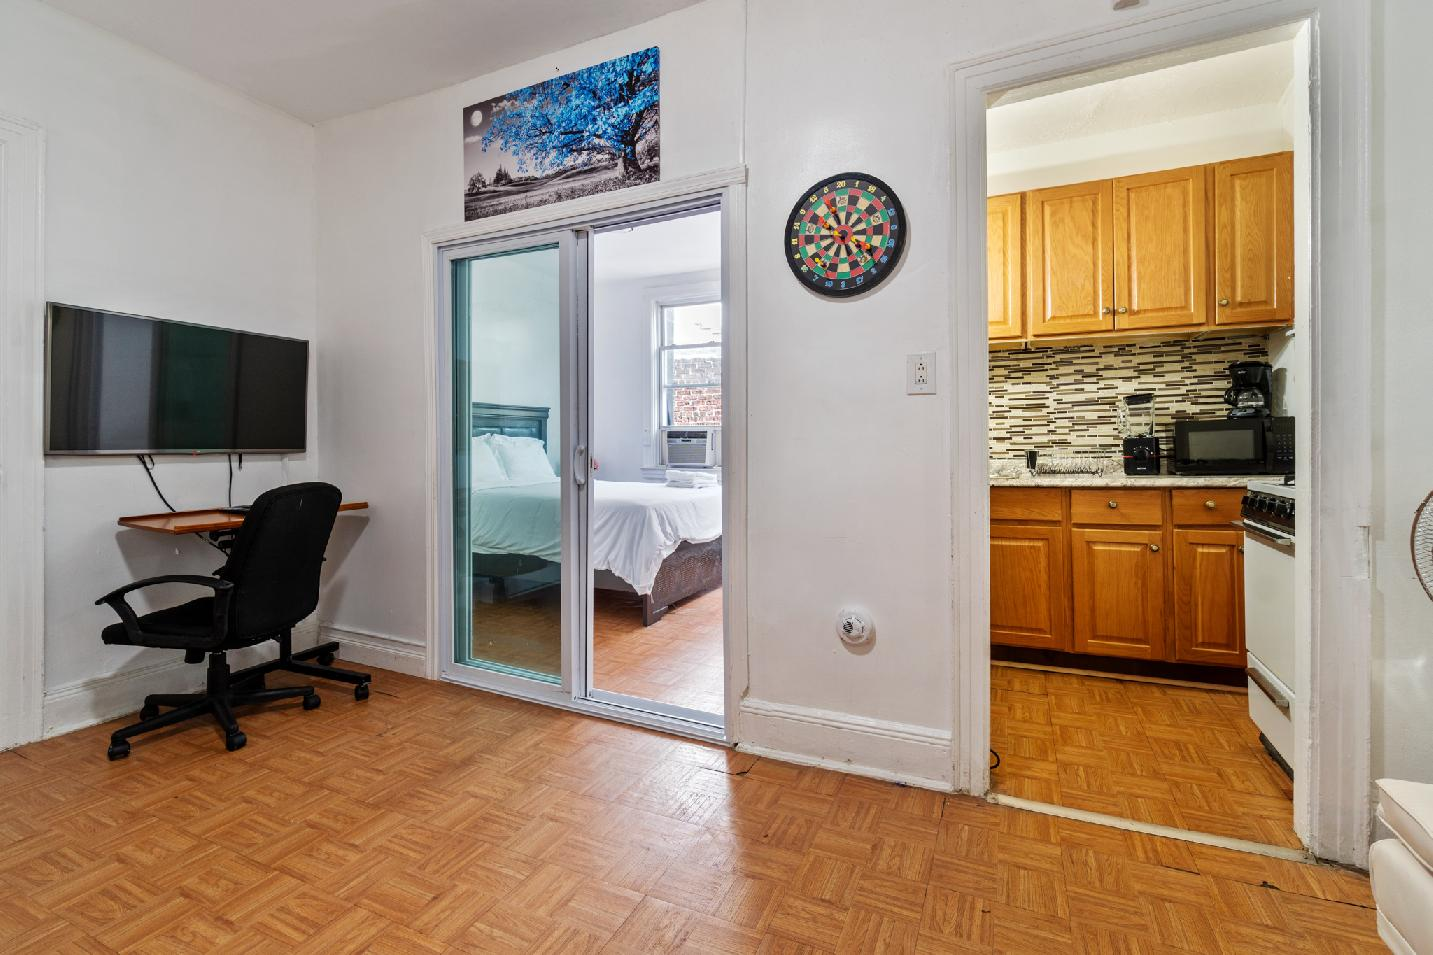 ☆ ❣ APT 2 Charming Getaway for NYC  35% OFF ☆ ❣ photo 27003455